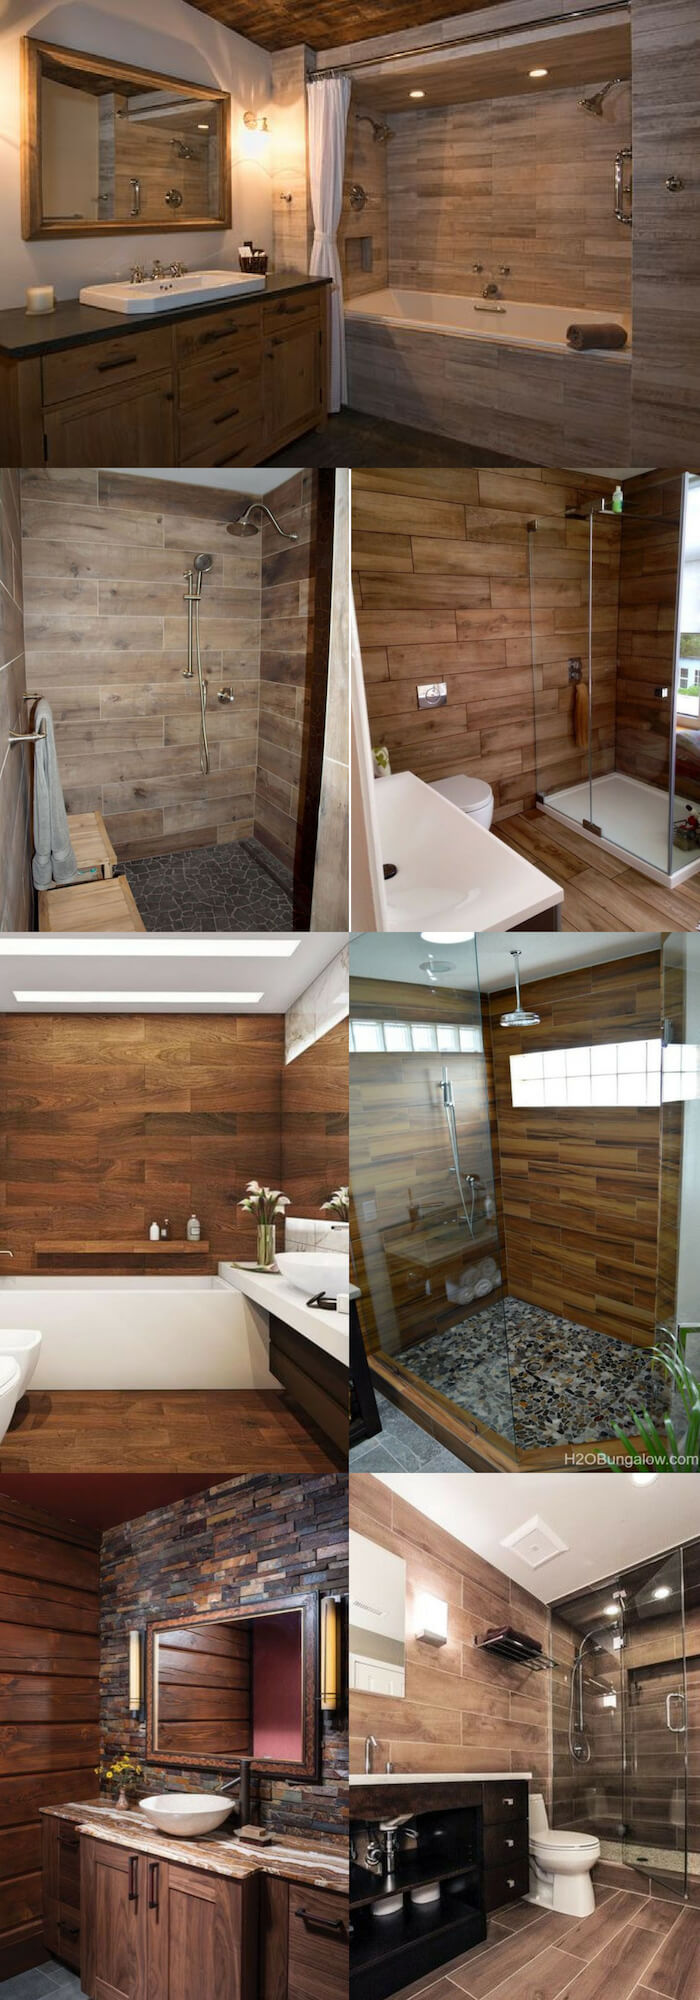 Wood wall | Unique Wall Tile Ideas for Bathroom Design